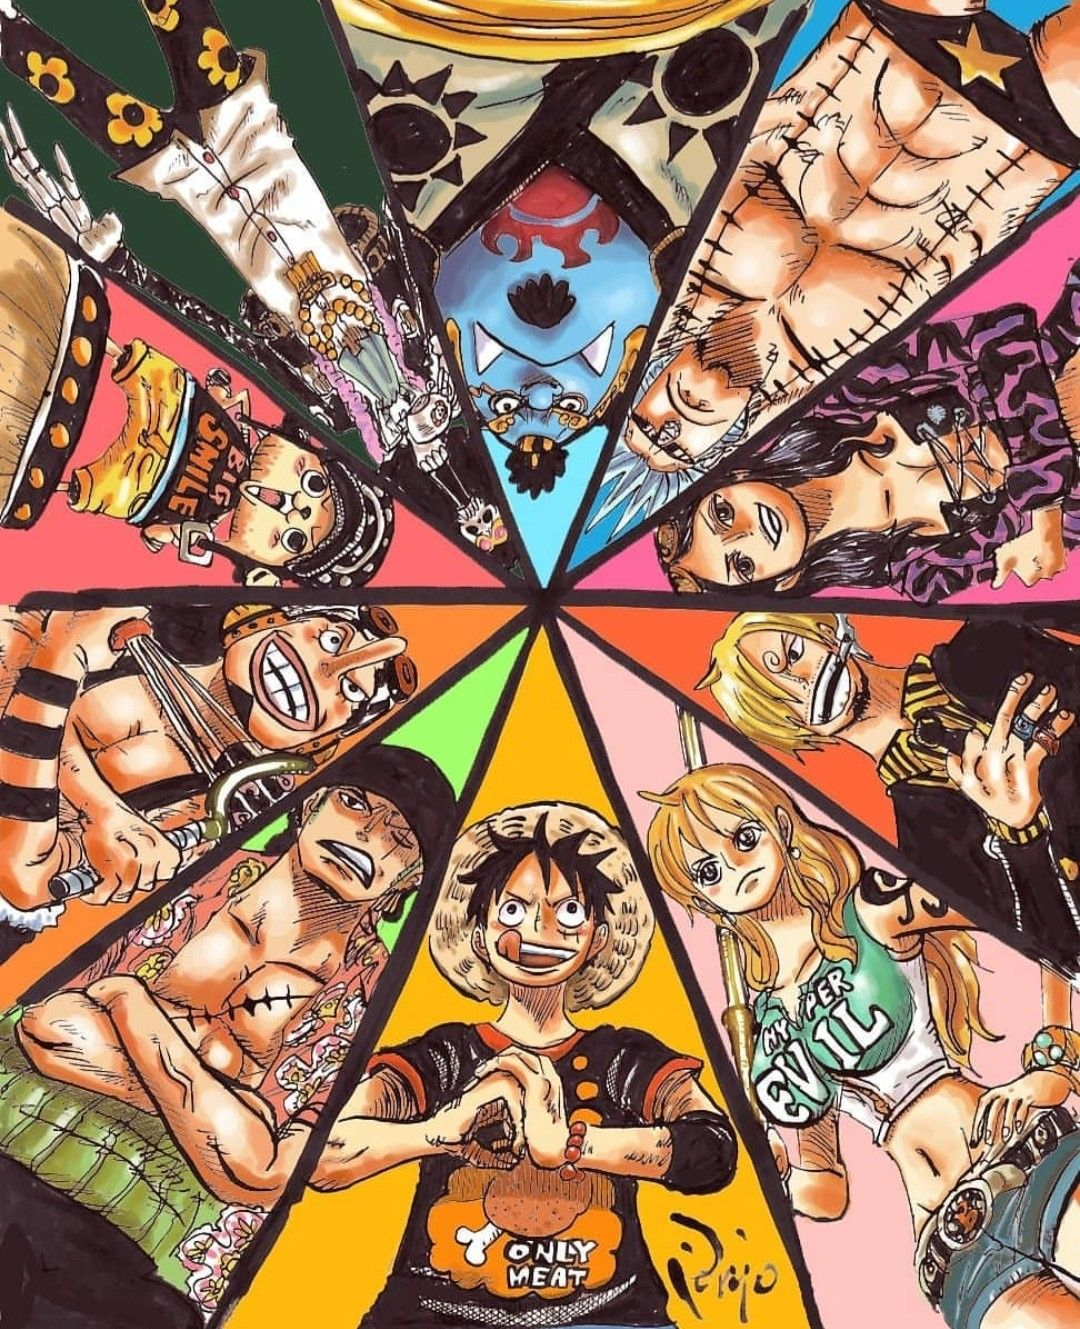 Mugiwaras One Piece Manga One Piece Pictures One Piece Anime